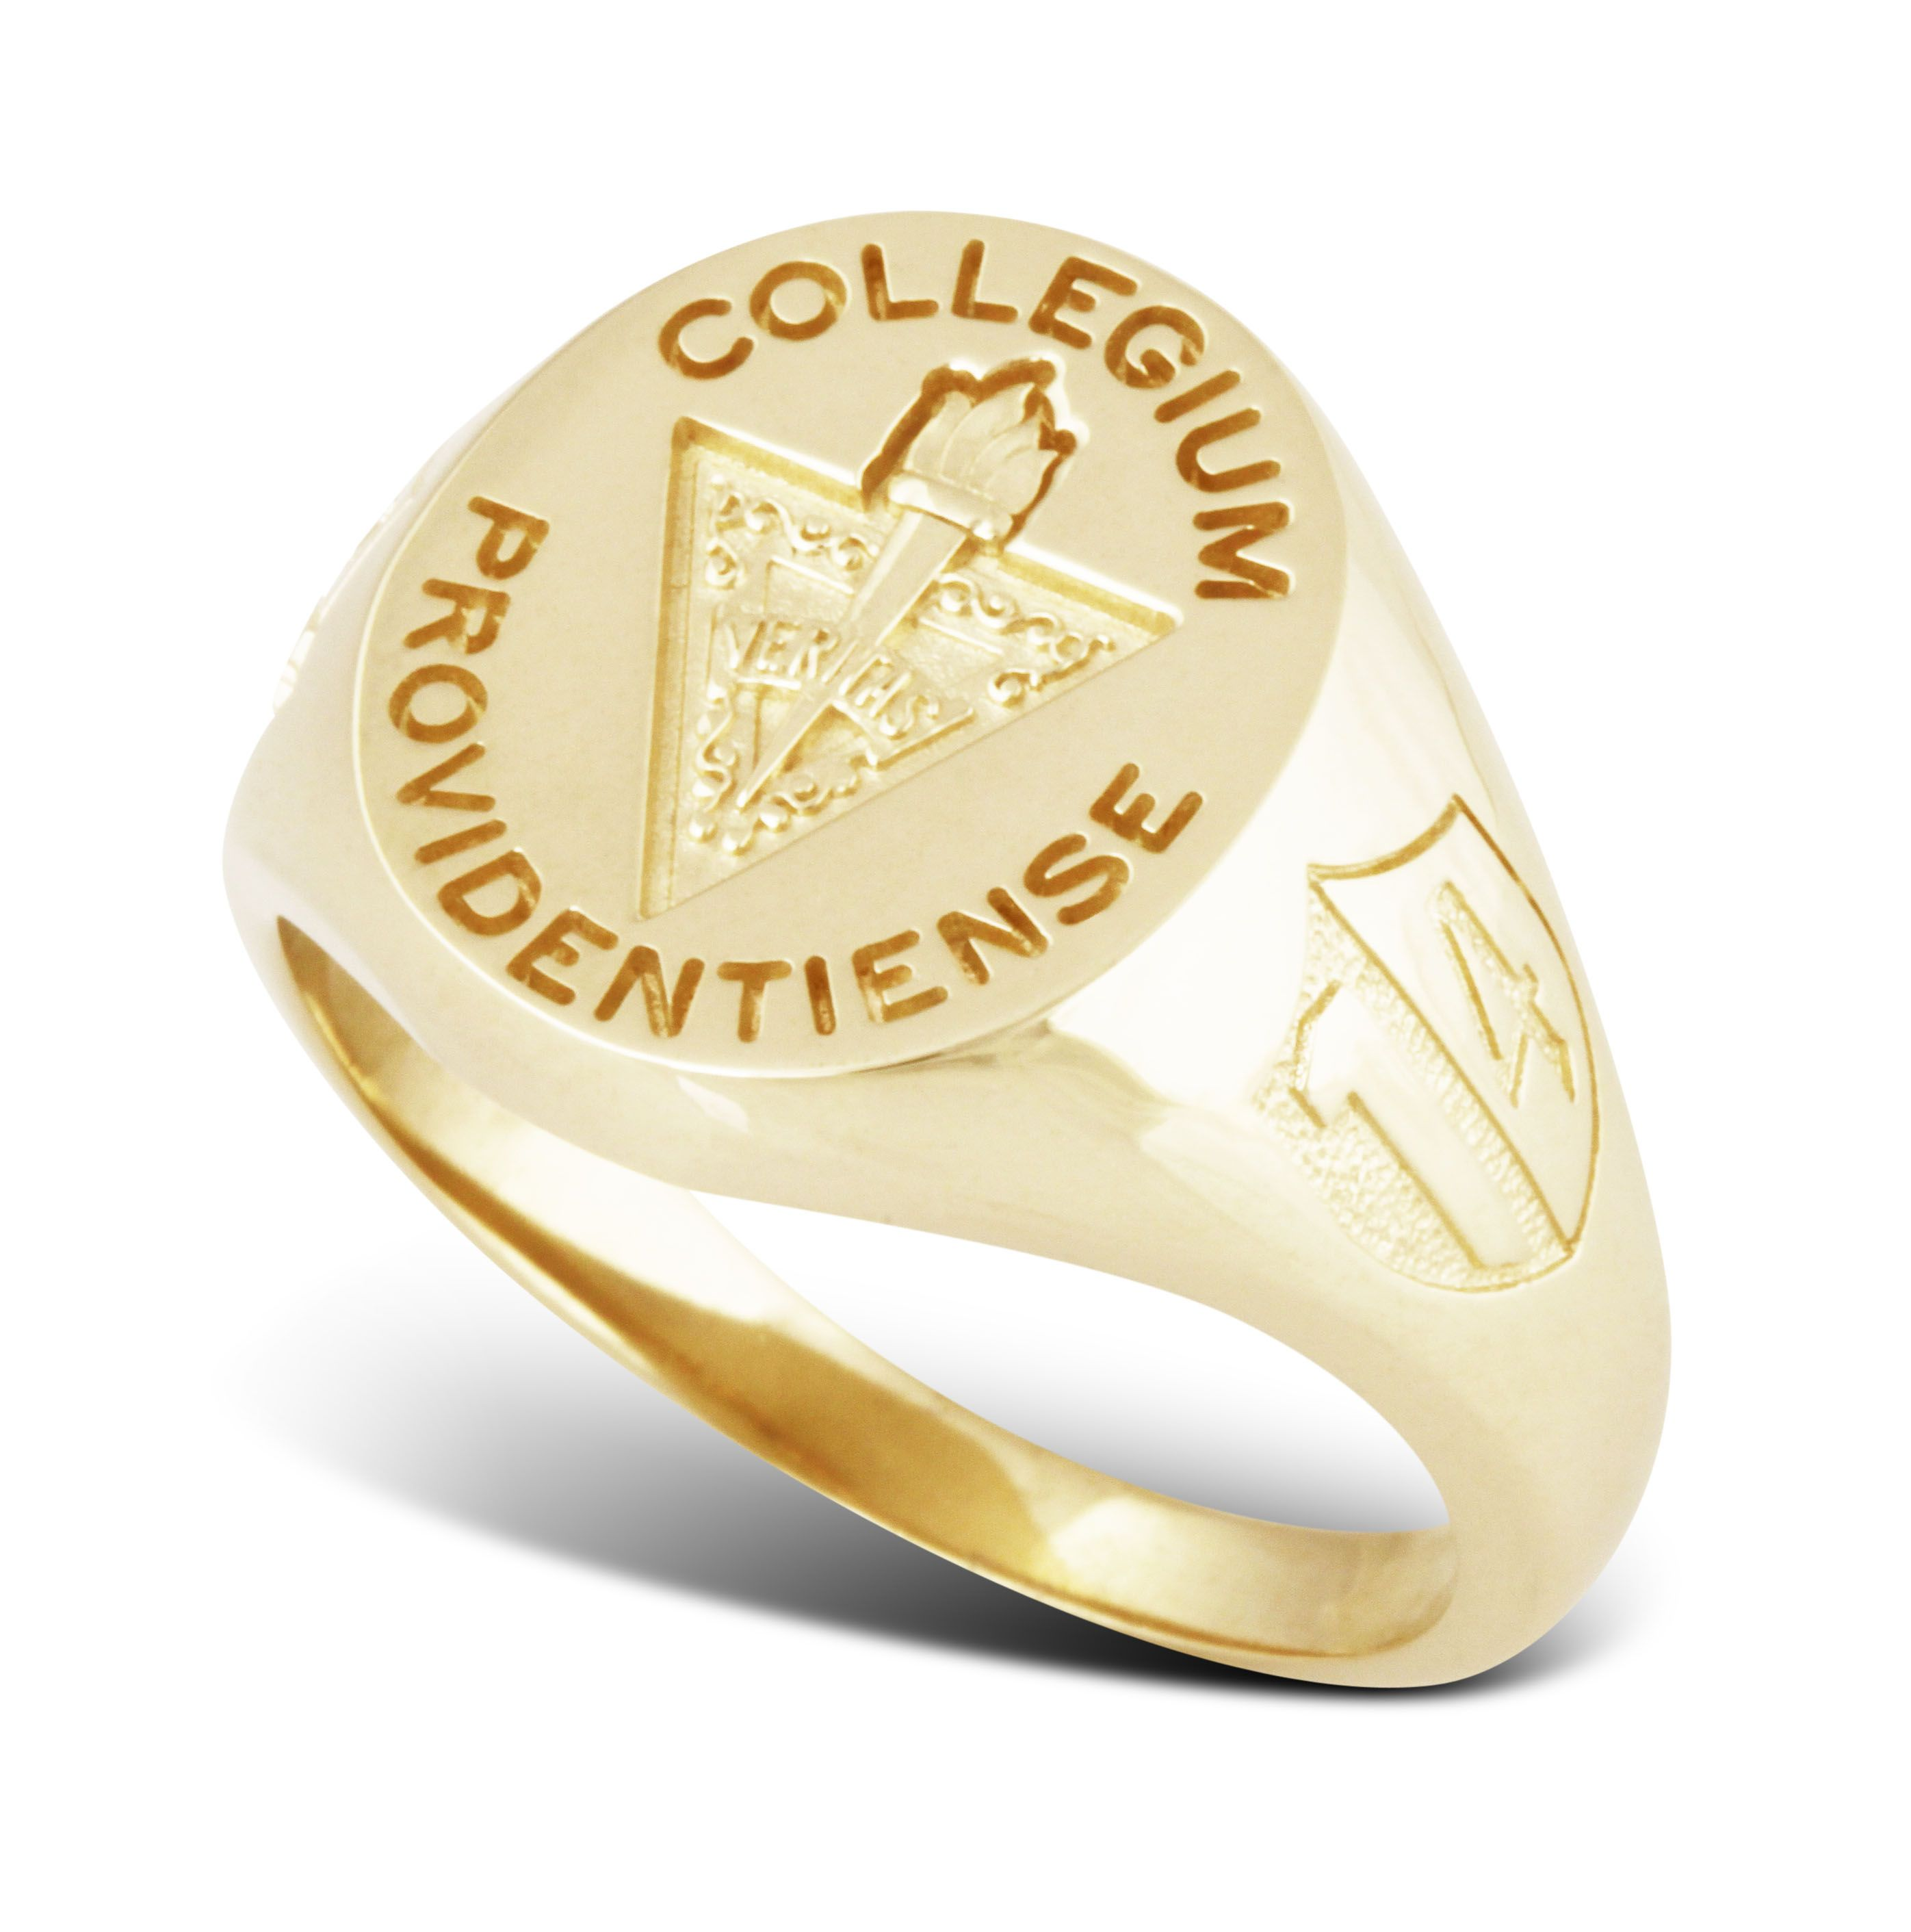 the college dee definitely mysteries rings